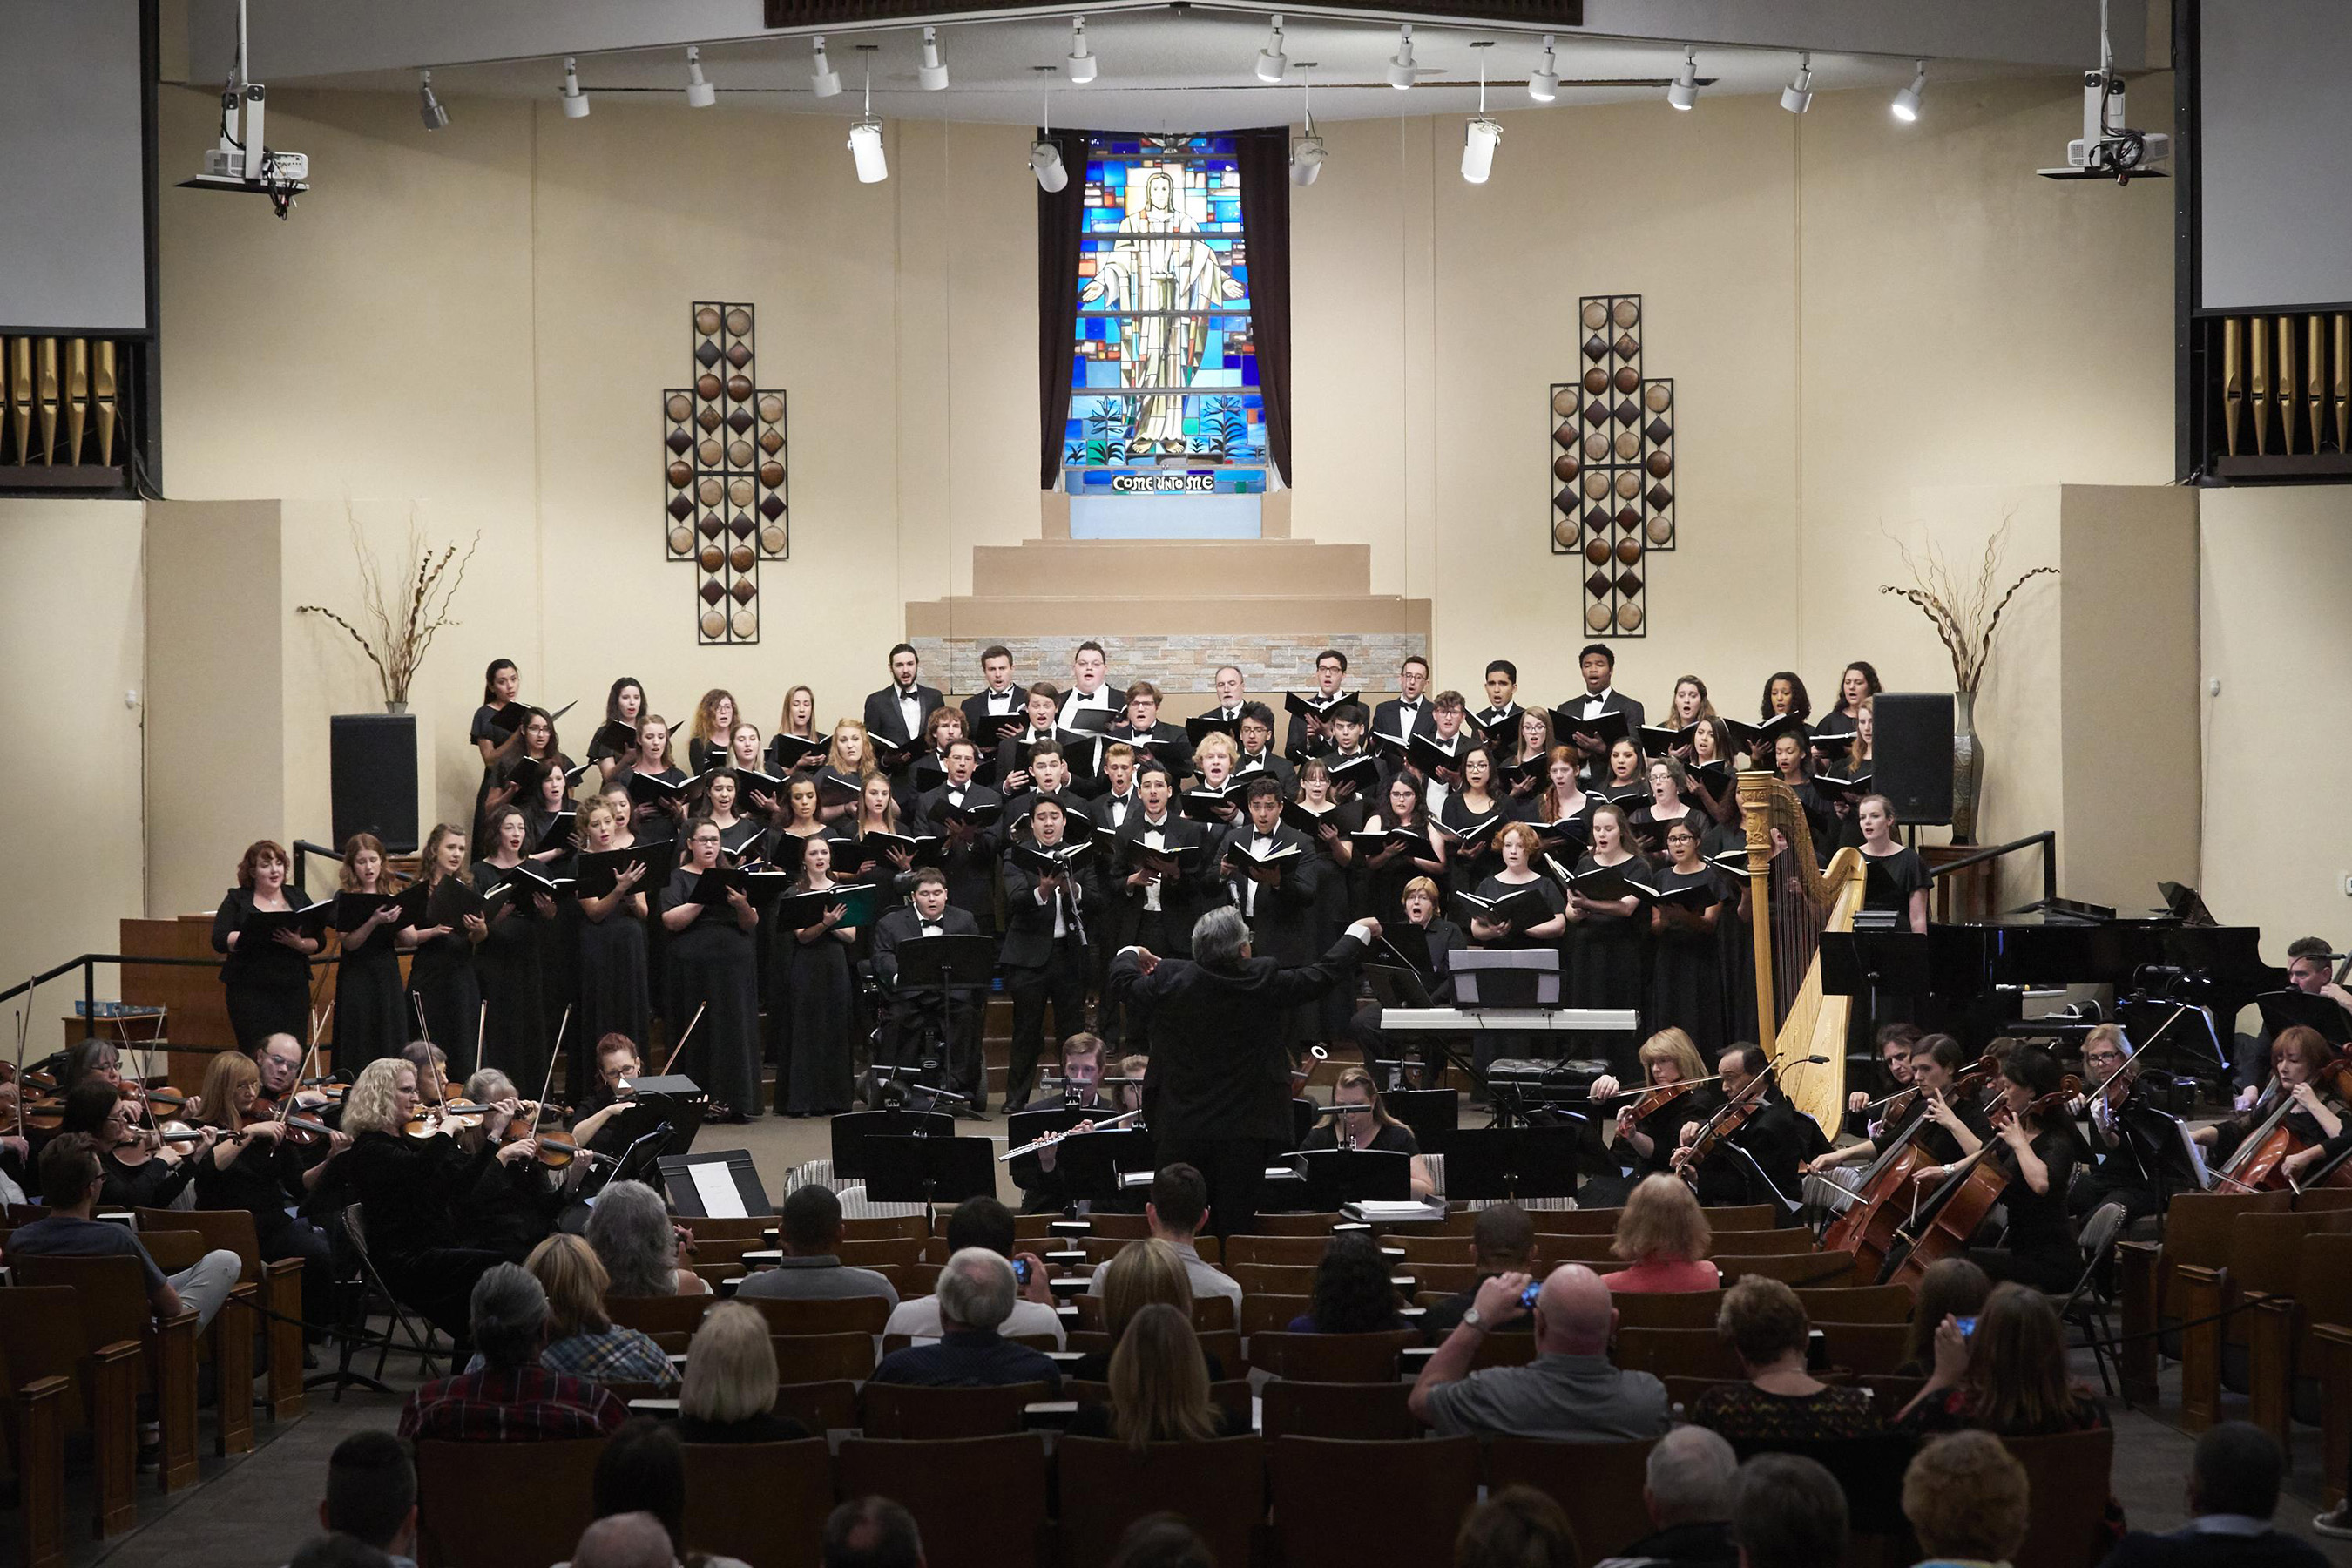 Grand Canyon University's Canyon Choral Society has performed many renowned works, such as the musically imaginative melodies of Lux Aeterna.